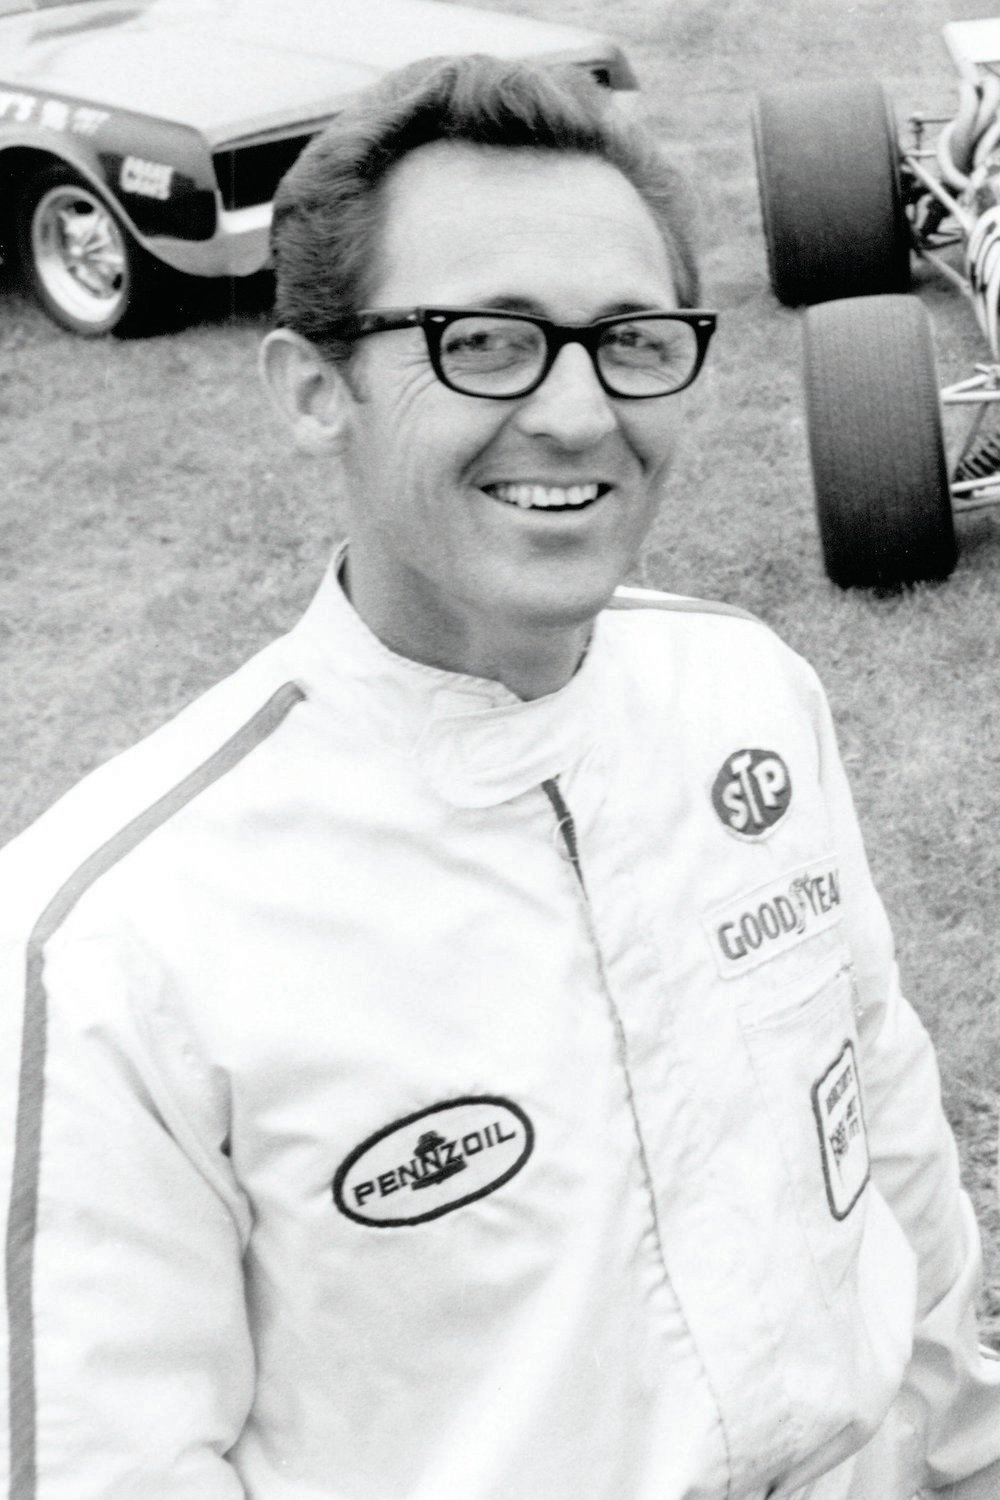 Here's the legendary Dyno Don in a 1968 publicity shot; he was the former Chevrolet dealership mechanic who parlayed a hot 409 into a factory Comet deal into a two-car team with Schartman and into the first ride in a factory-backed flip-top Funny Car. He match-raced and crashed, and rebuilt and raced some more, and eventually parlayed that into a very successful run in NHRA Pro Stock Mustangs.